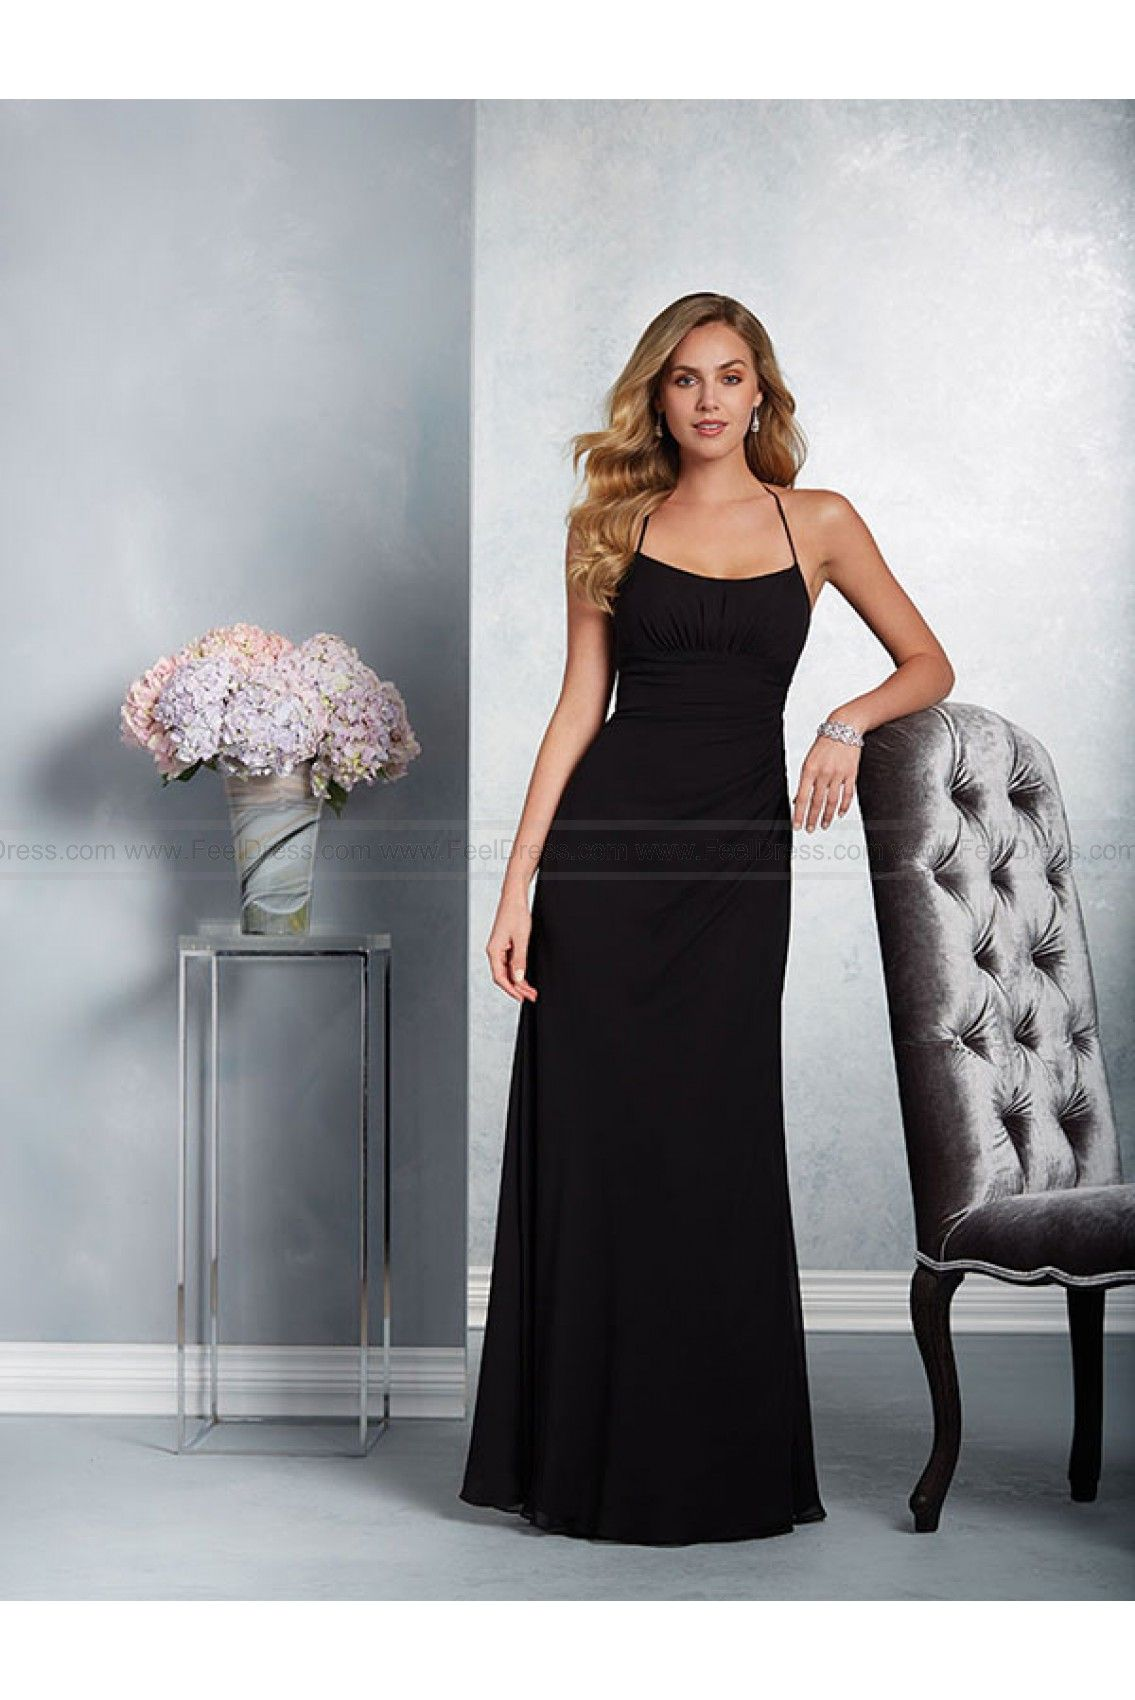 Alfred angelo bridesmaid dress style 7417 new alfred angelo alfred angelo bridesmaid dress style 7417 new ombrellifo Images